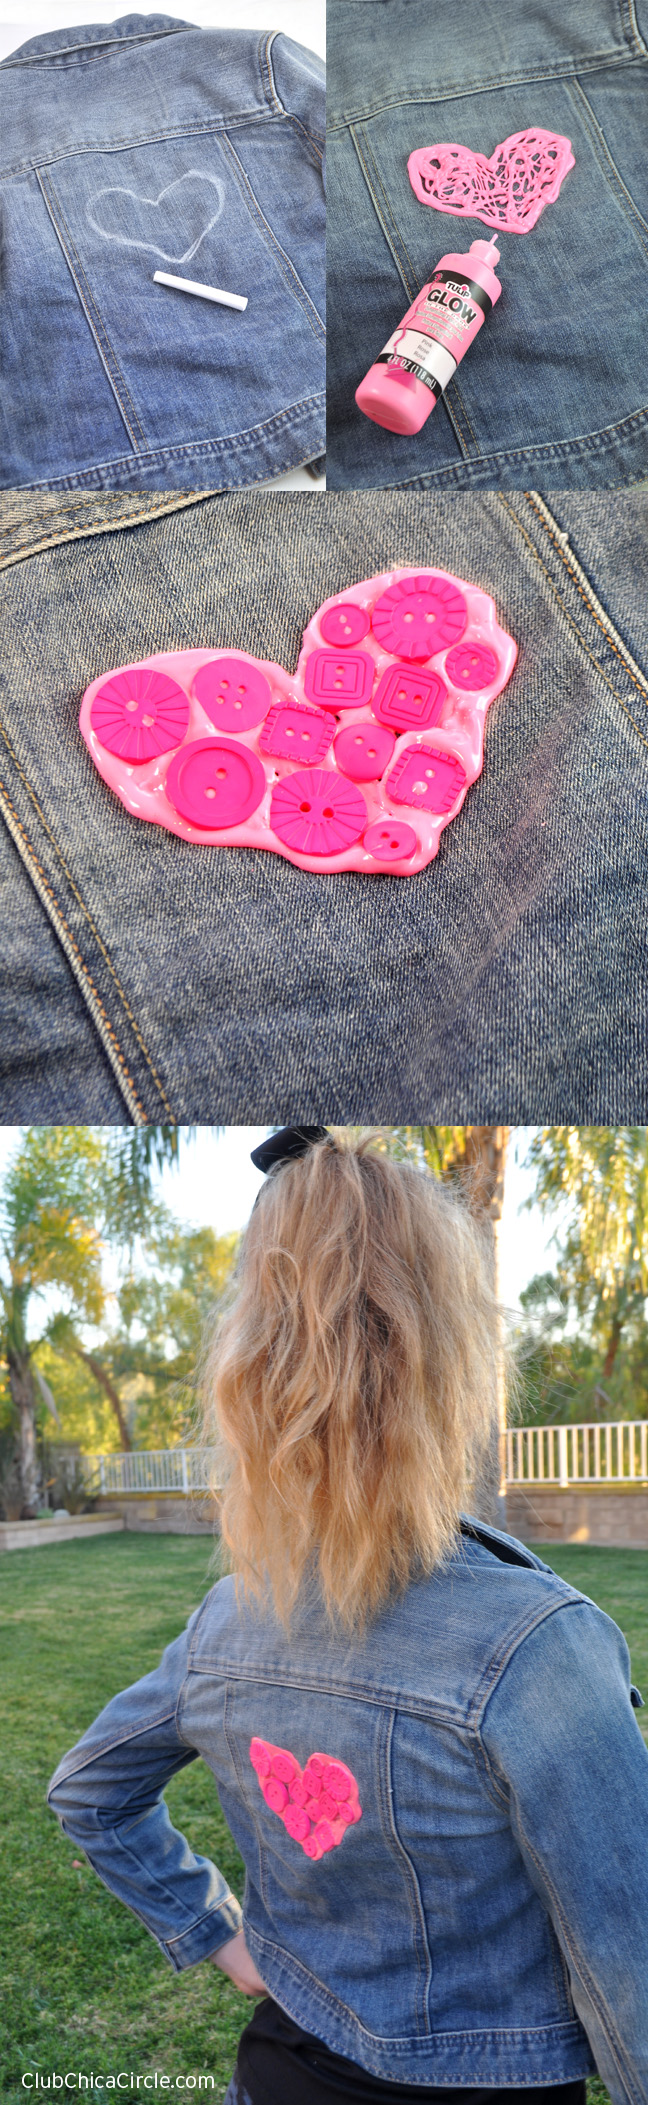 Upcycled Denim Jacket with Buttons and Puffy Paint